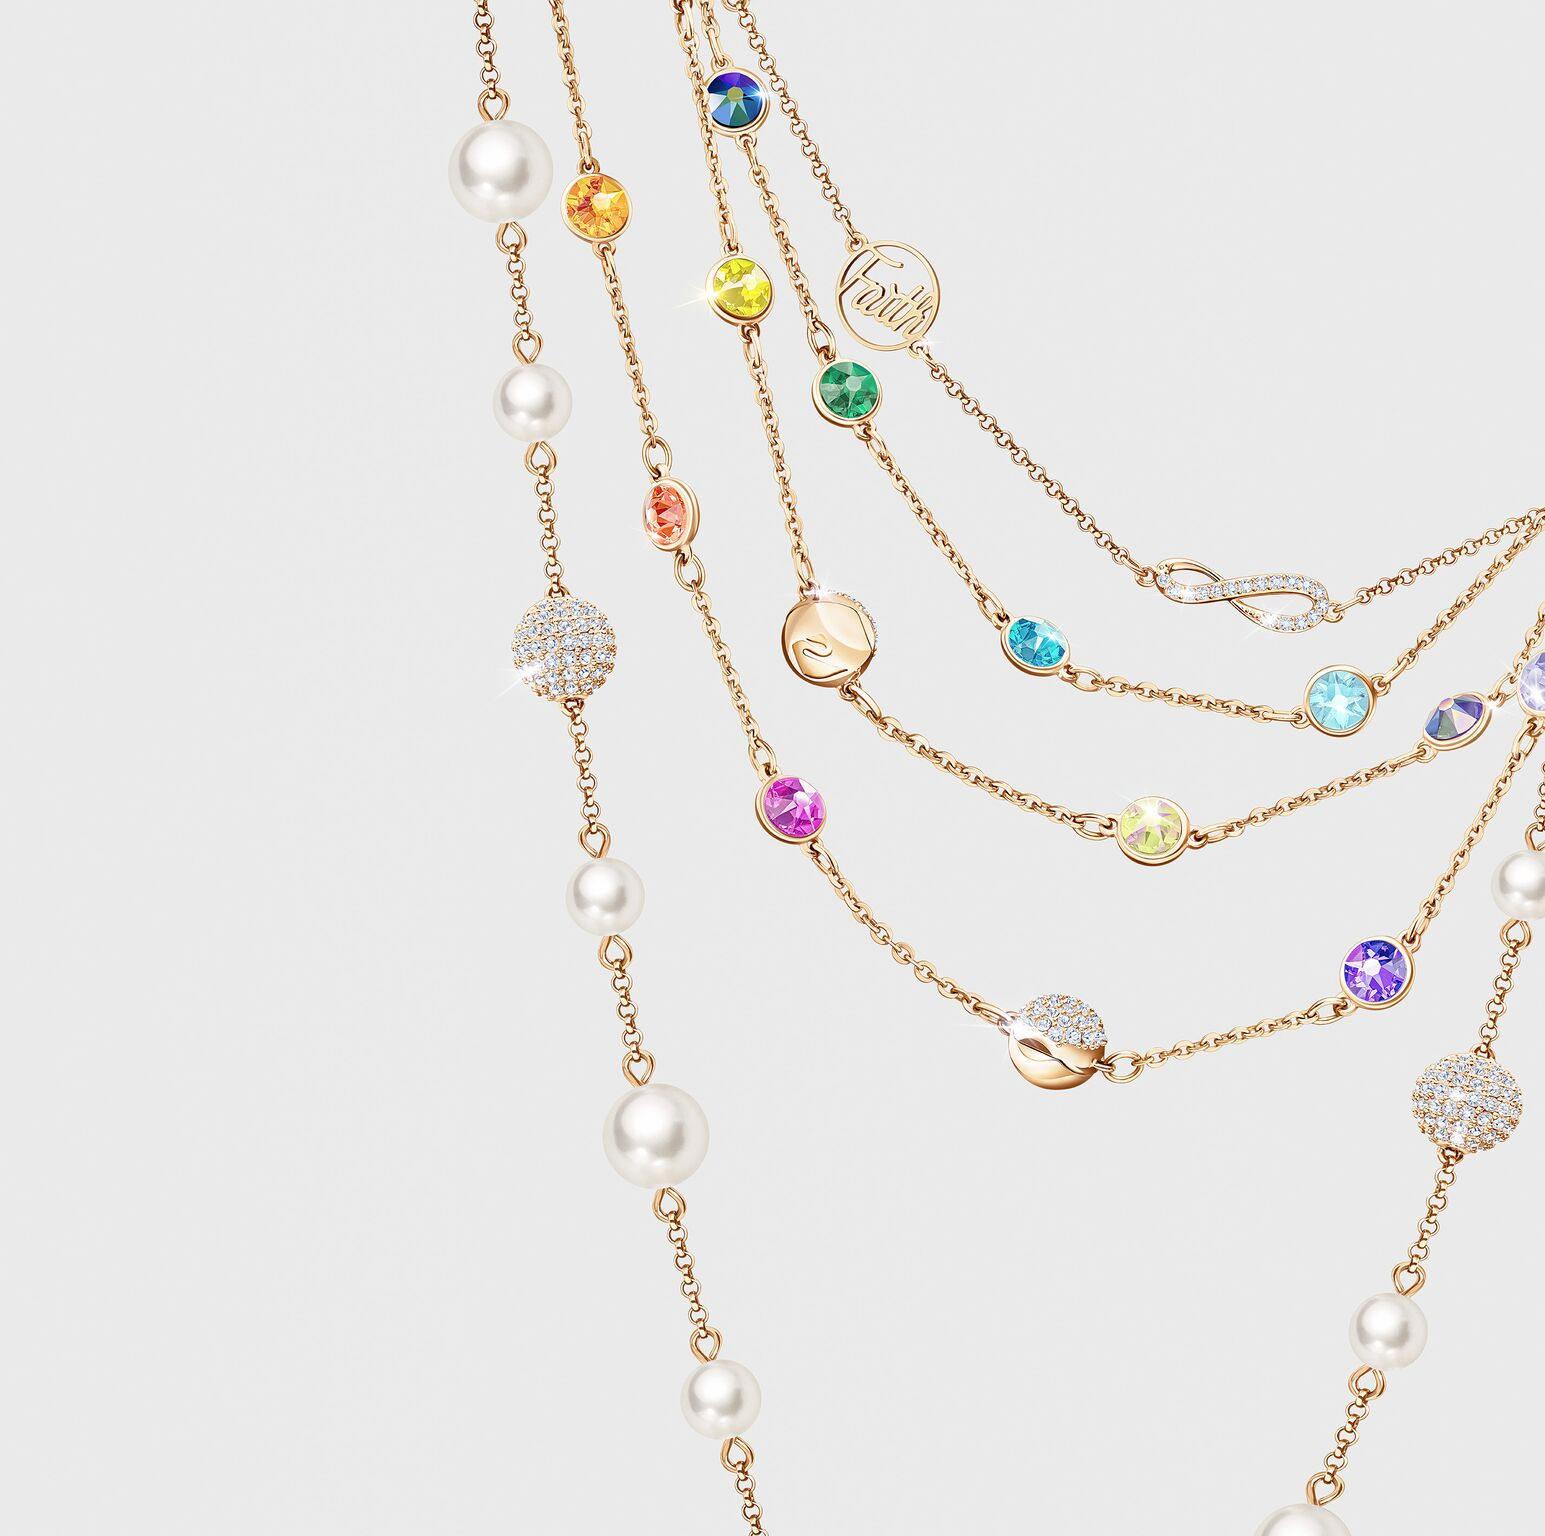 64d7610a2701 The Swarovski Remix collection boasts a huge variety of customisable  strands that can be combined to create bracelets